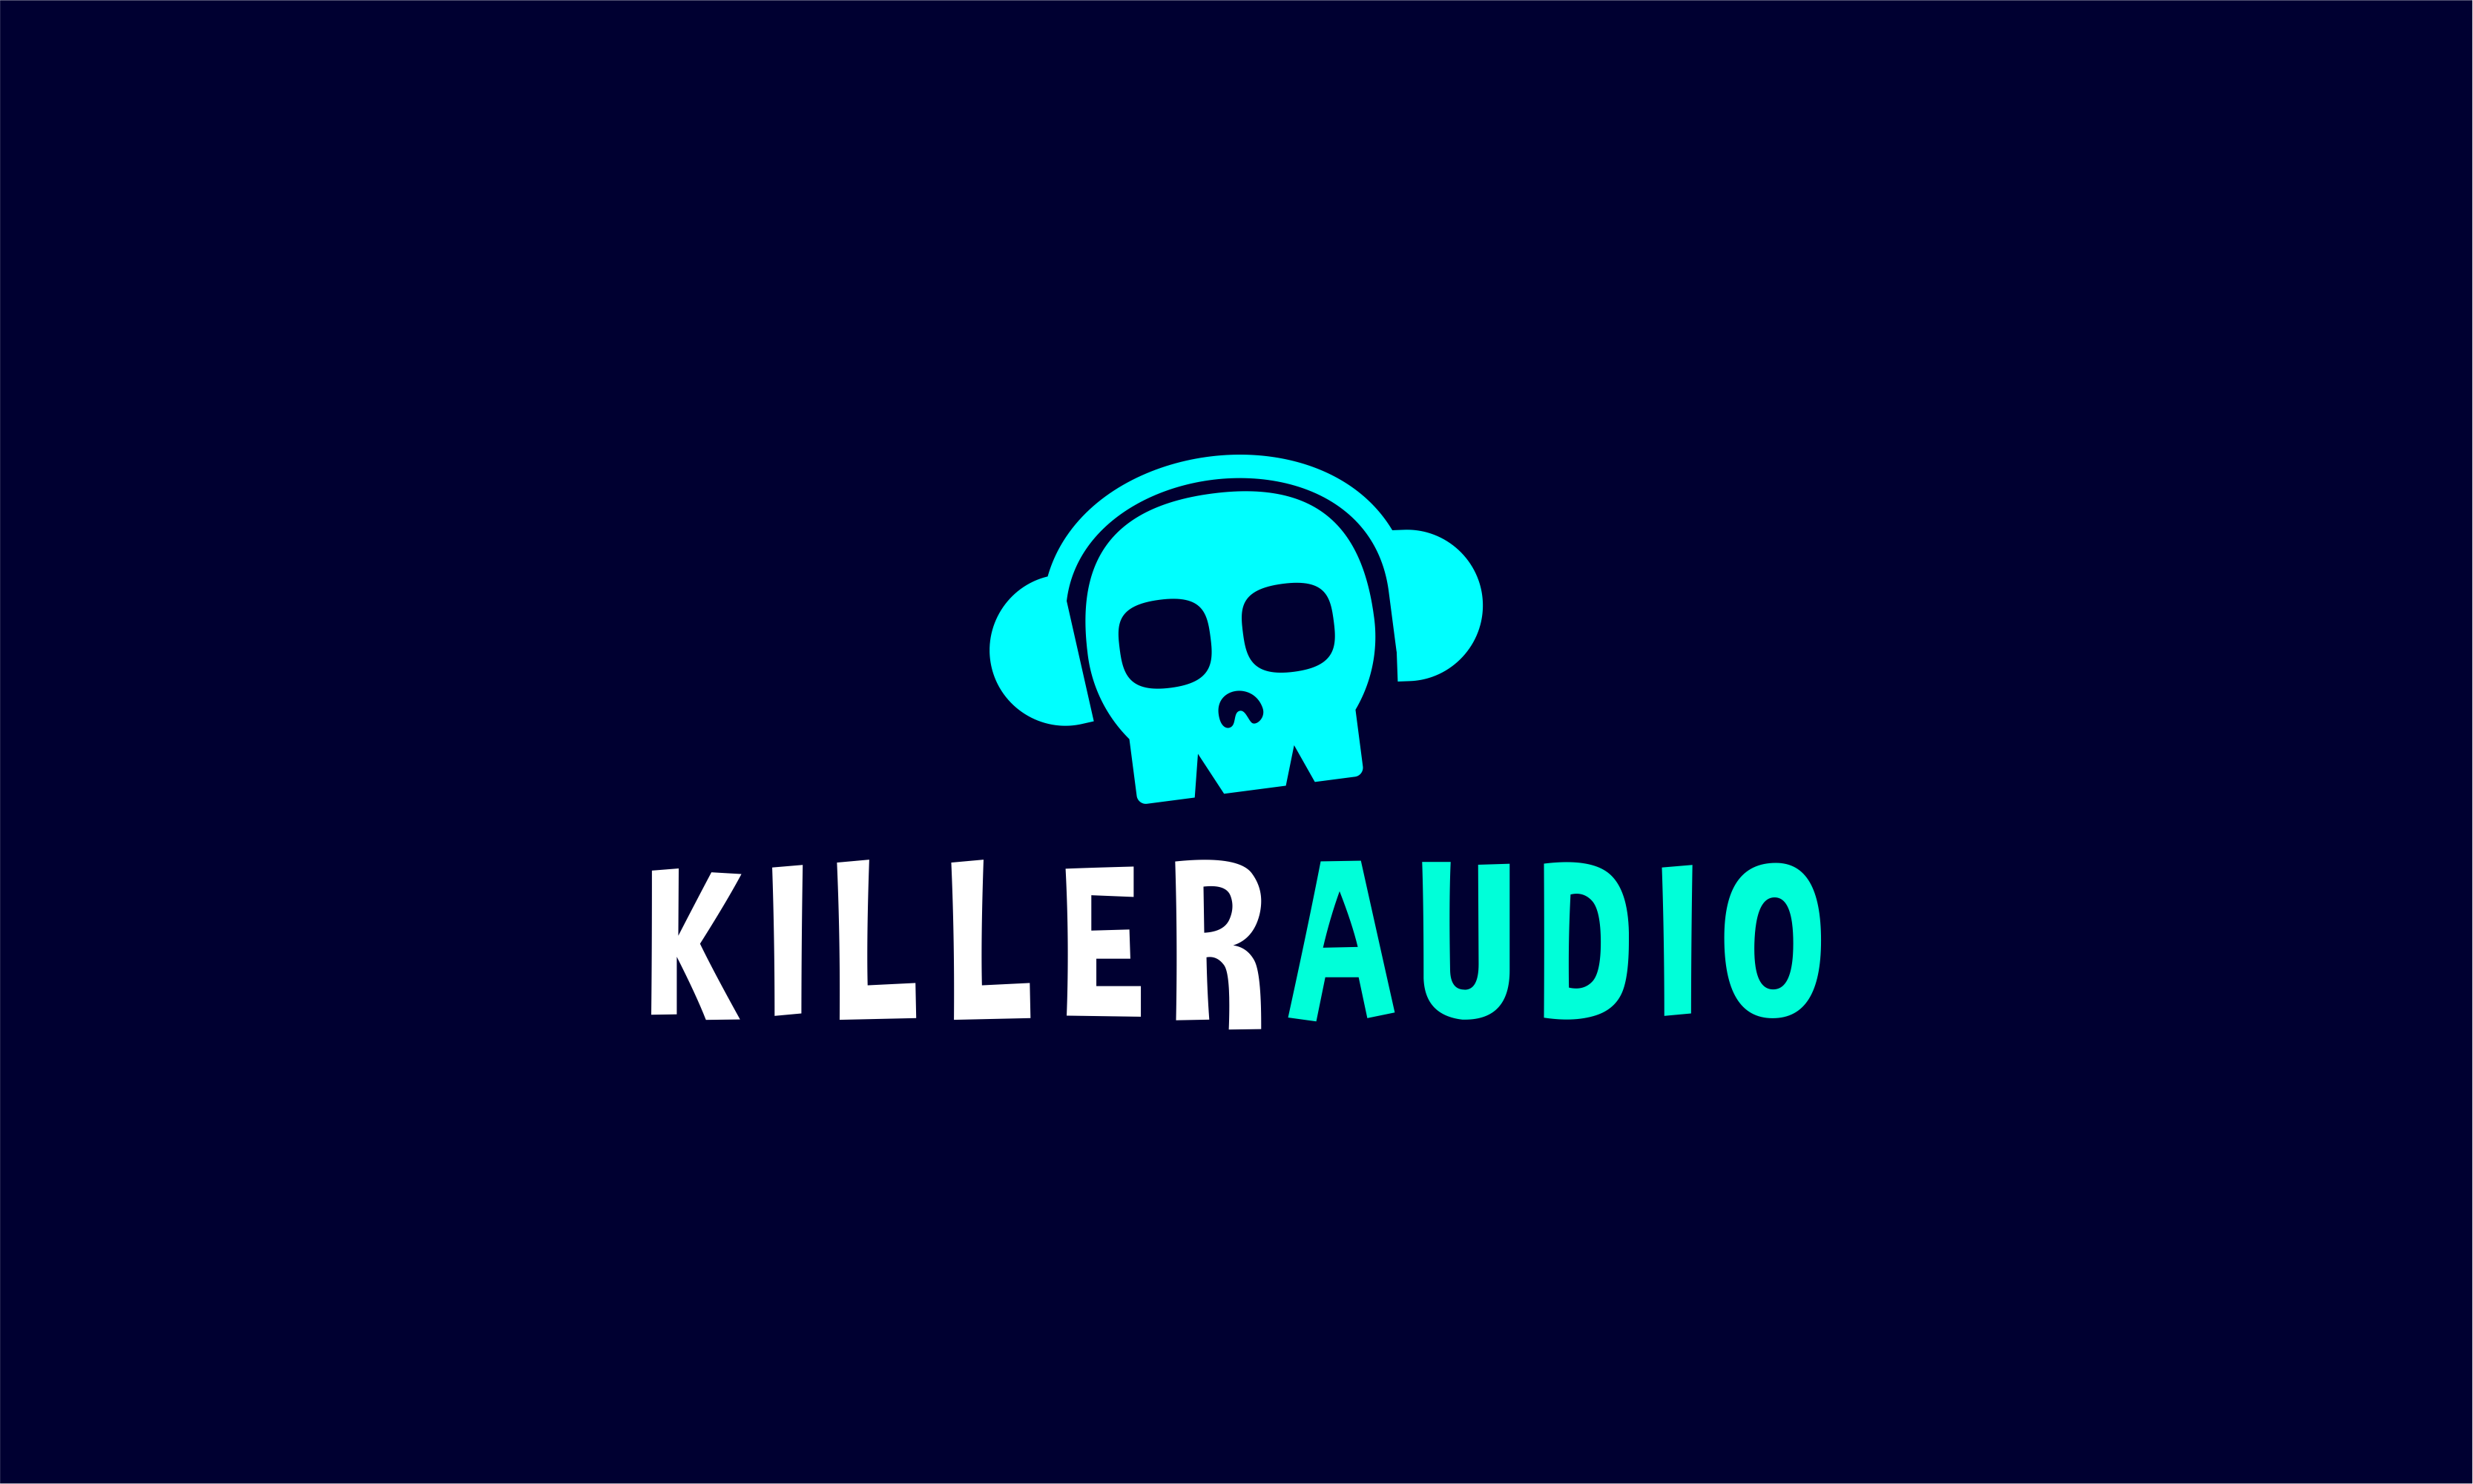 Killeraudio